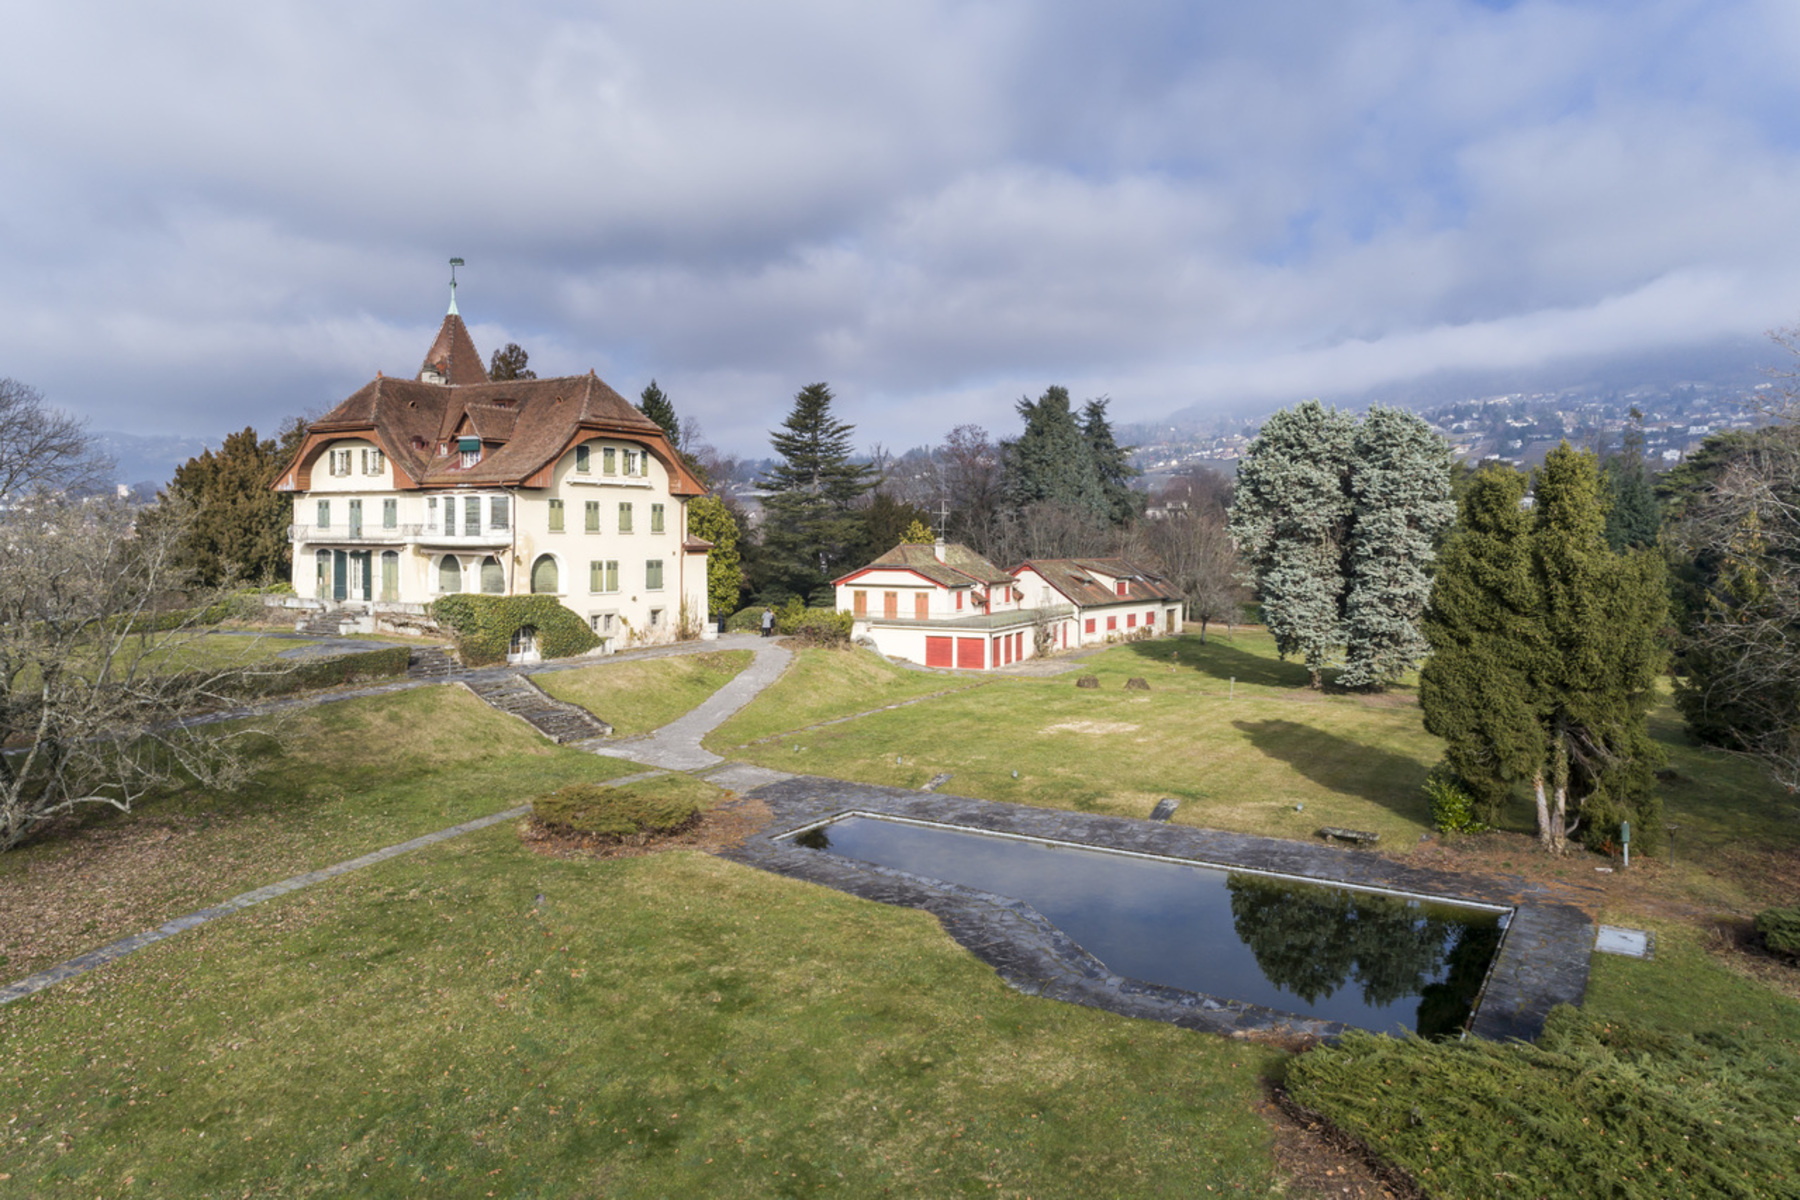 Single Family Homes por un Venta en Mansion situated amid extensive leafy grounds Clarens / Montreux Montreux, Vaud 1820 Suiza